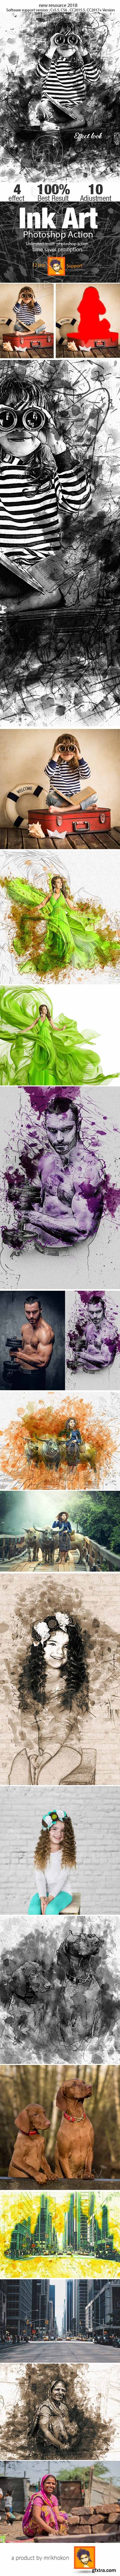 GraphicRiver - Ink Art Photoshop Action 21871329